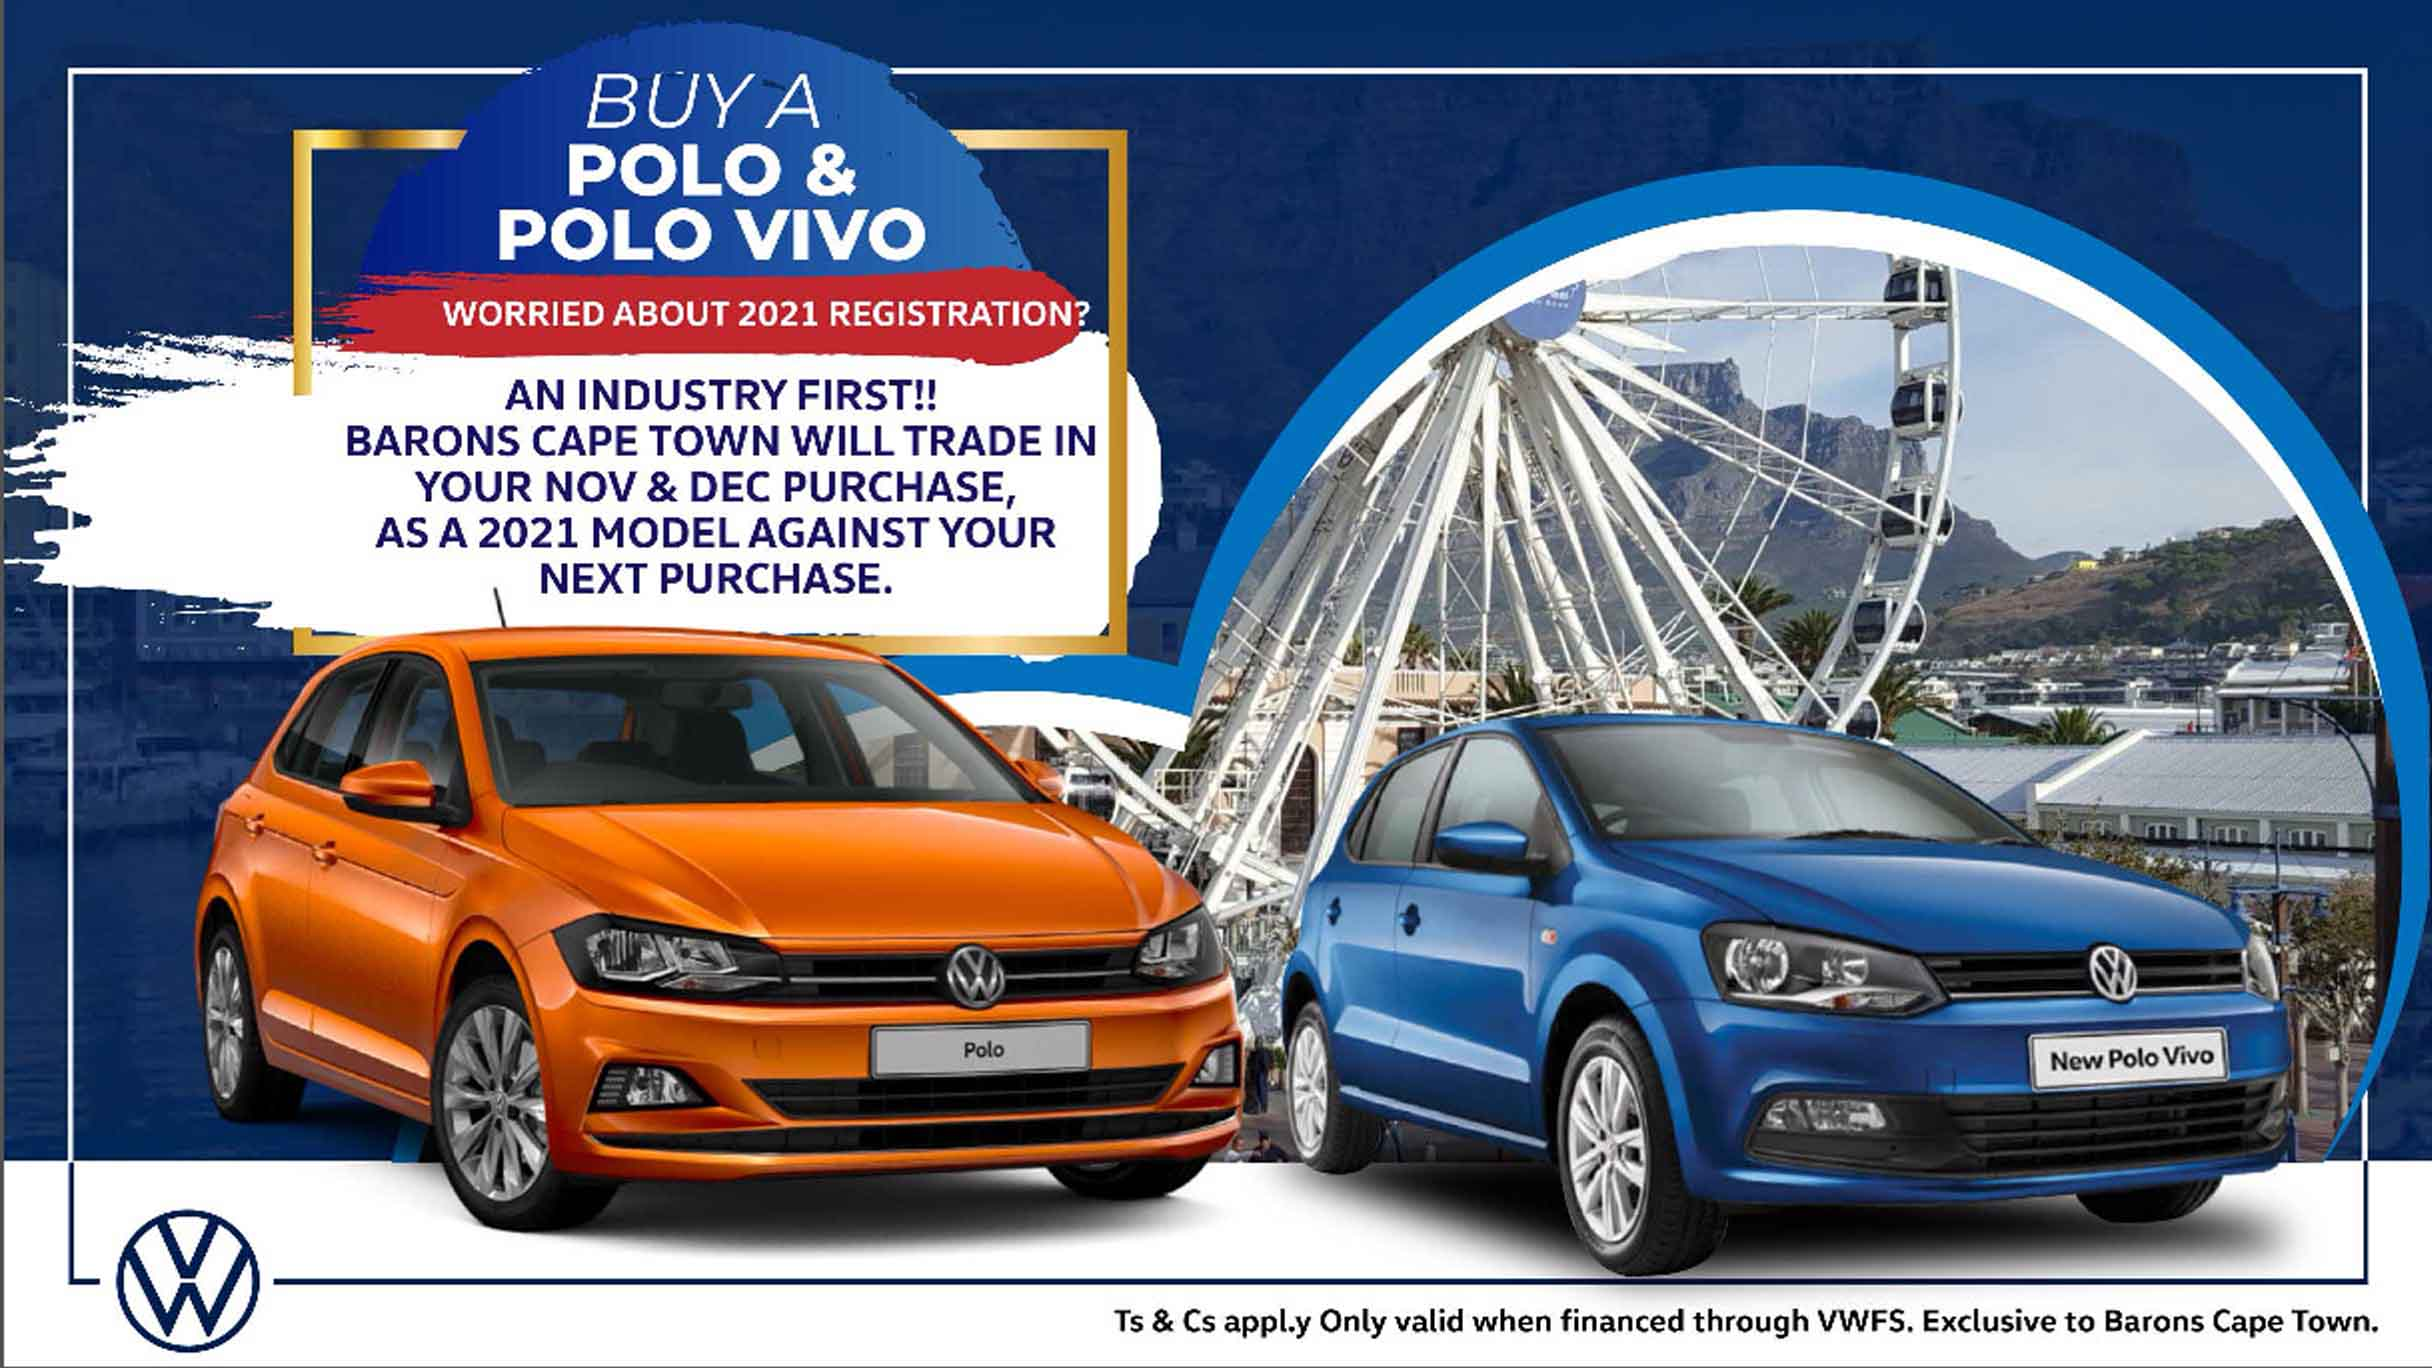 Trade-in offer at Barons Cape Town